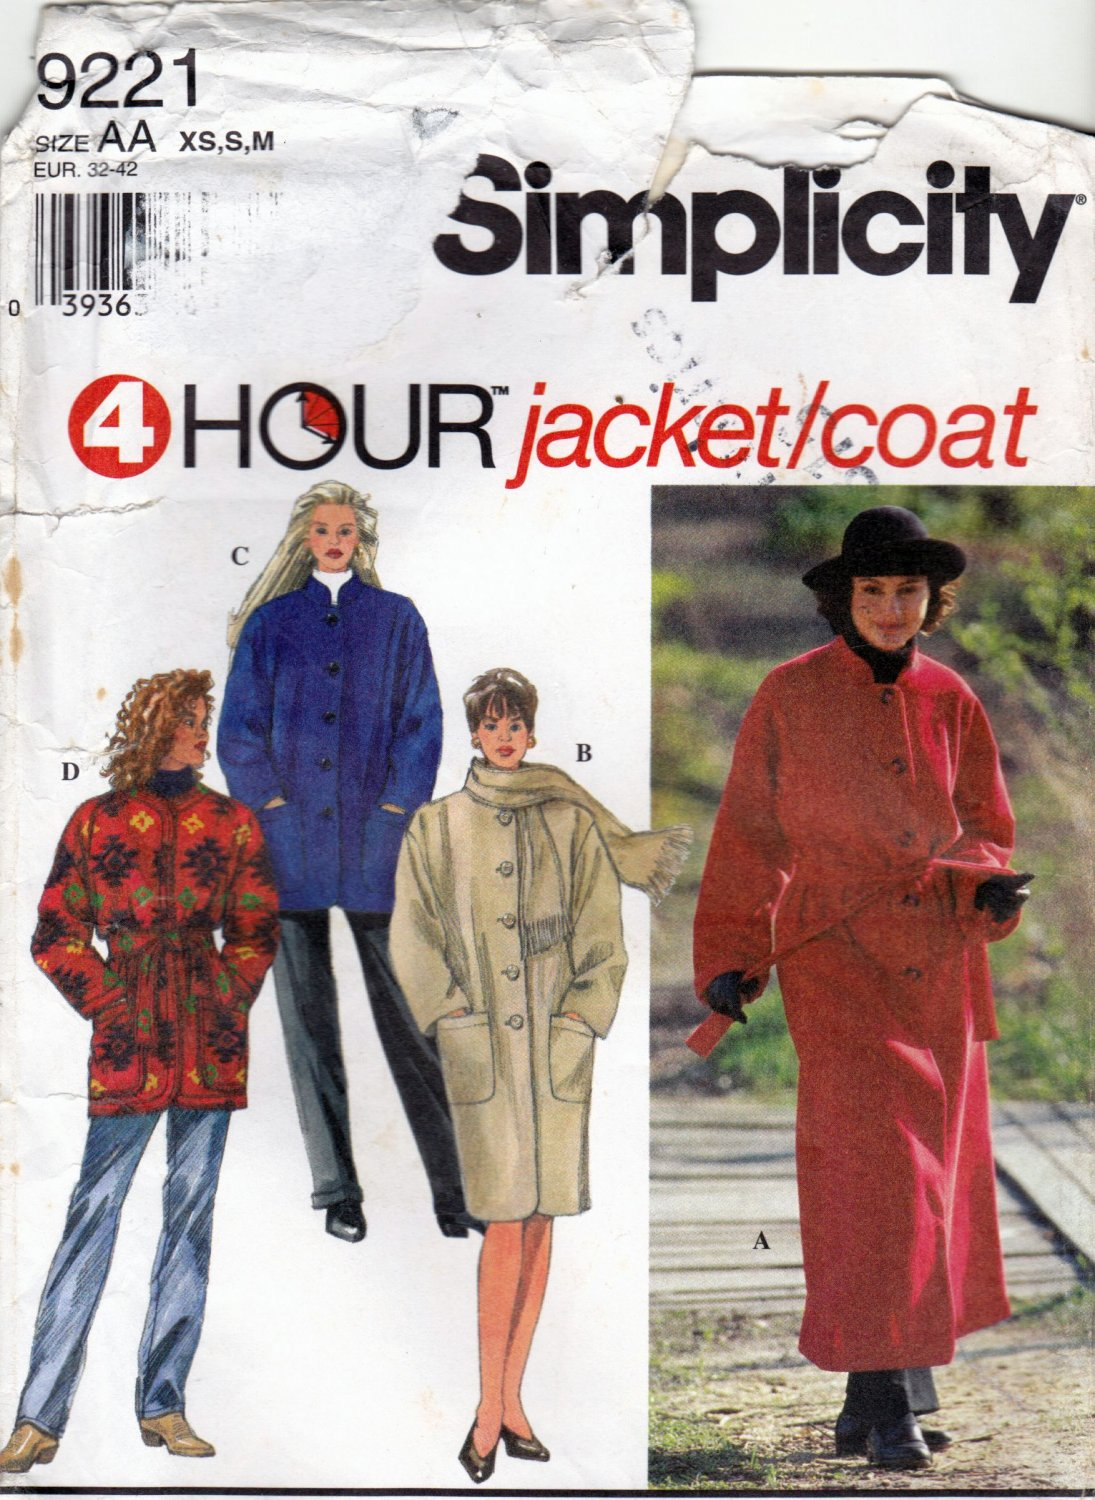 Simplicity 9221 Pattern uncut XS S M Jacket Coat Scarf Optional Lining